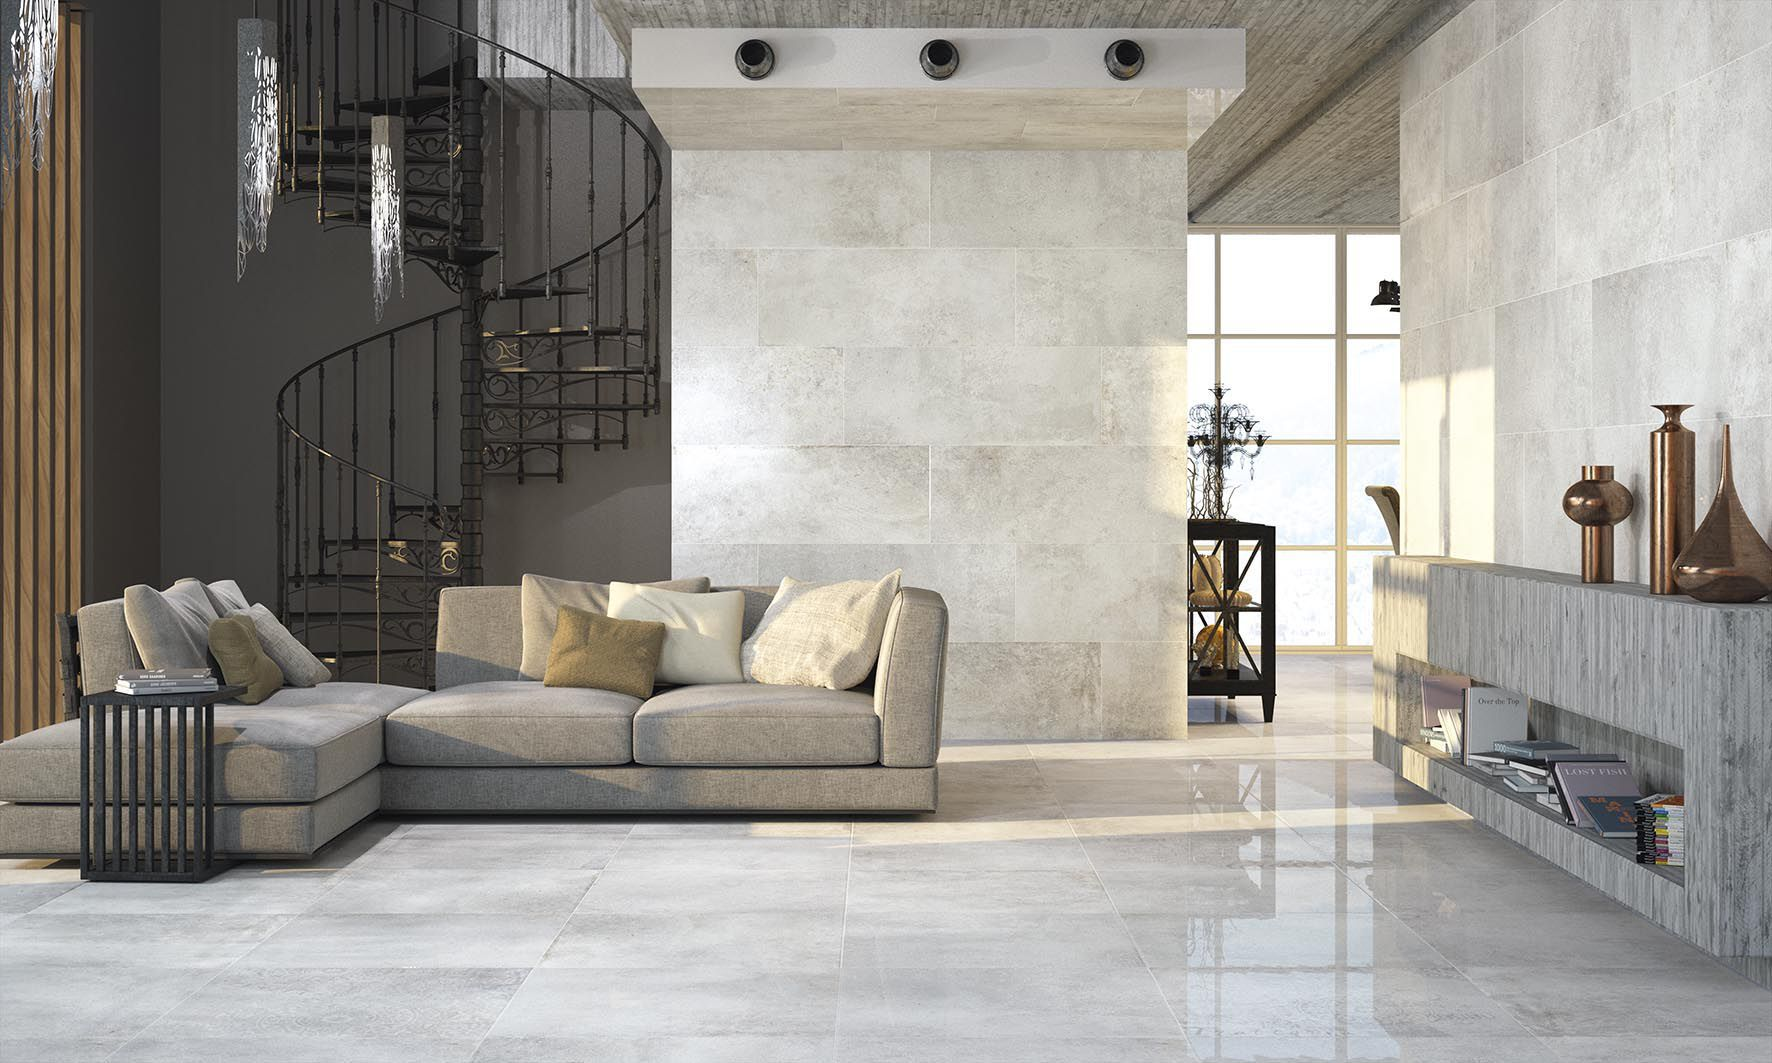 Living room tile floor porcelain stoneware high gloss living room tile floor porcelain stoneware high gloss cevisama atlas dailygadgetfo Images